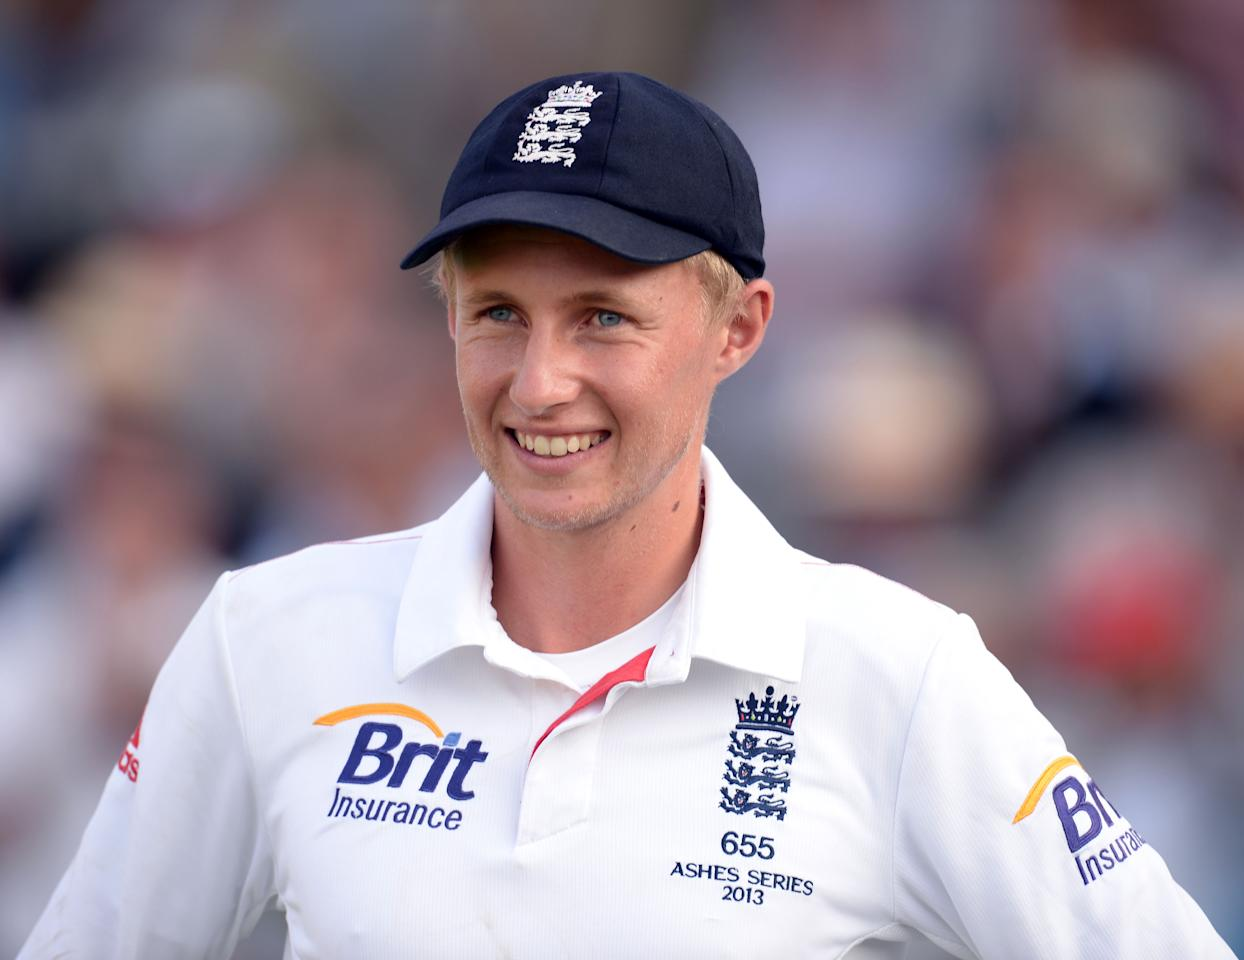 England's Joe Root smiles after getting the Man of the Match Award at the end of play on day four of the Second Investec Ashes Test at Lord's Cricket Ground, London.